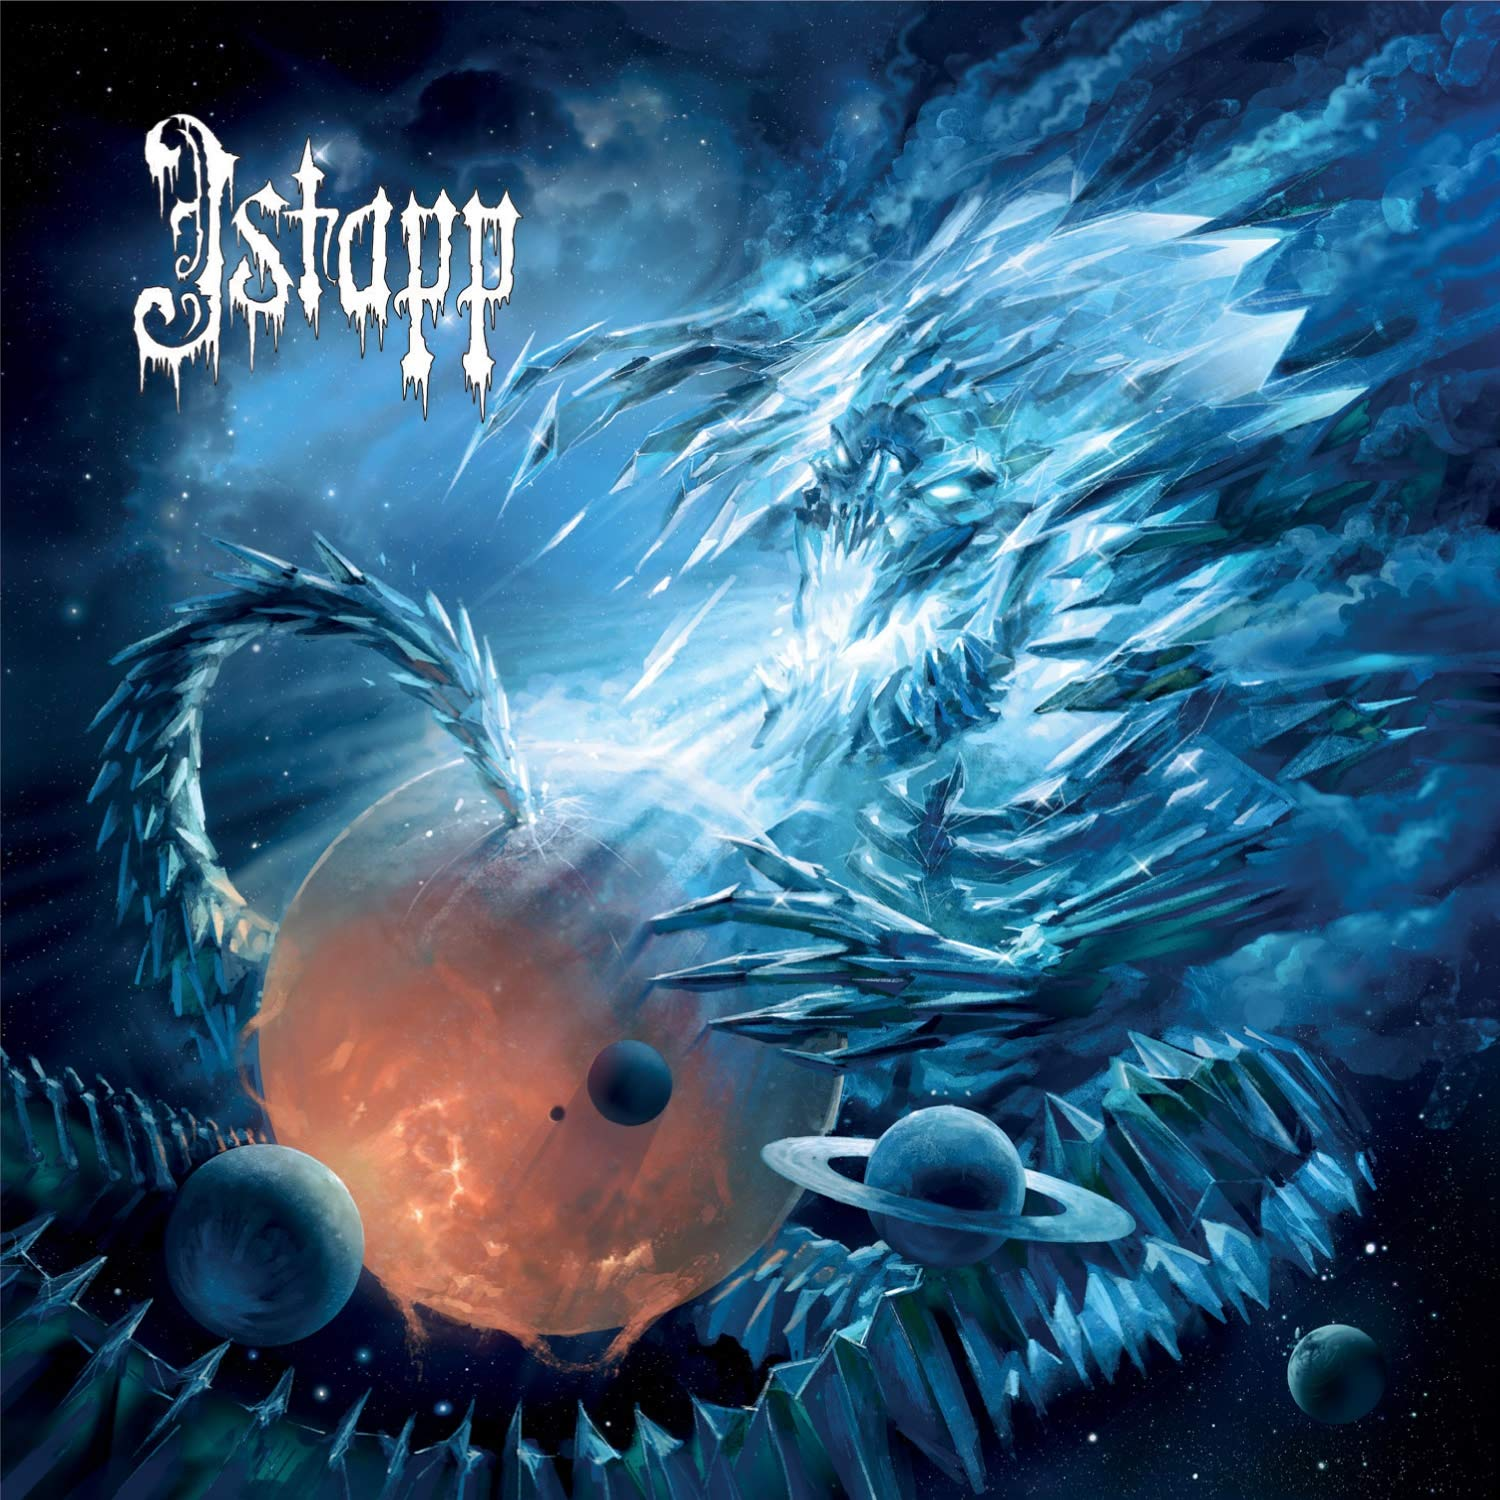 ISTAPP - THE INSIDIOUS STAR (CD)